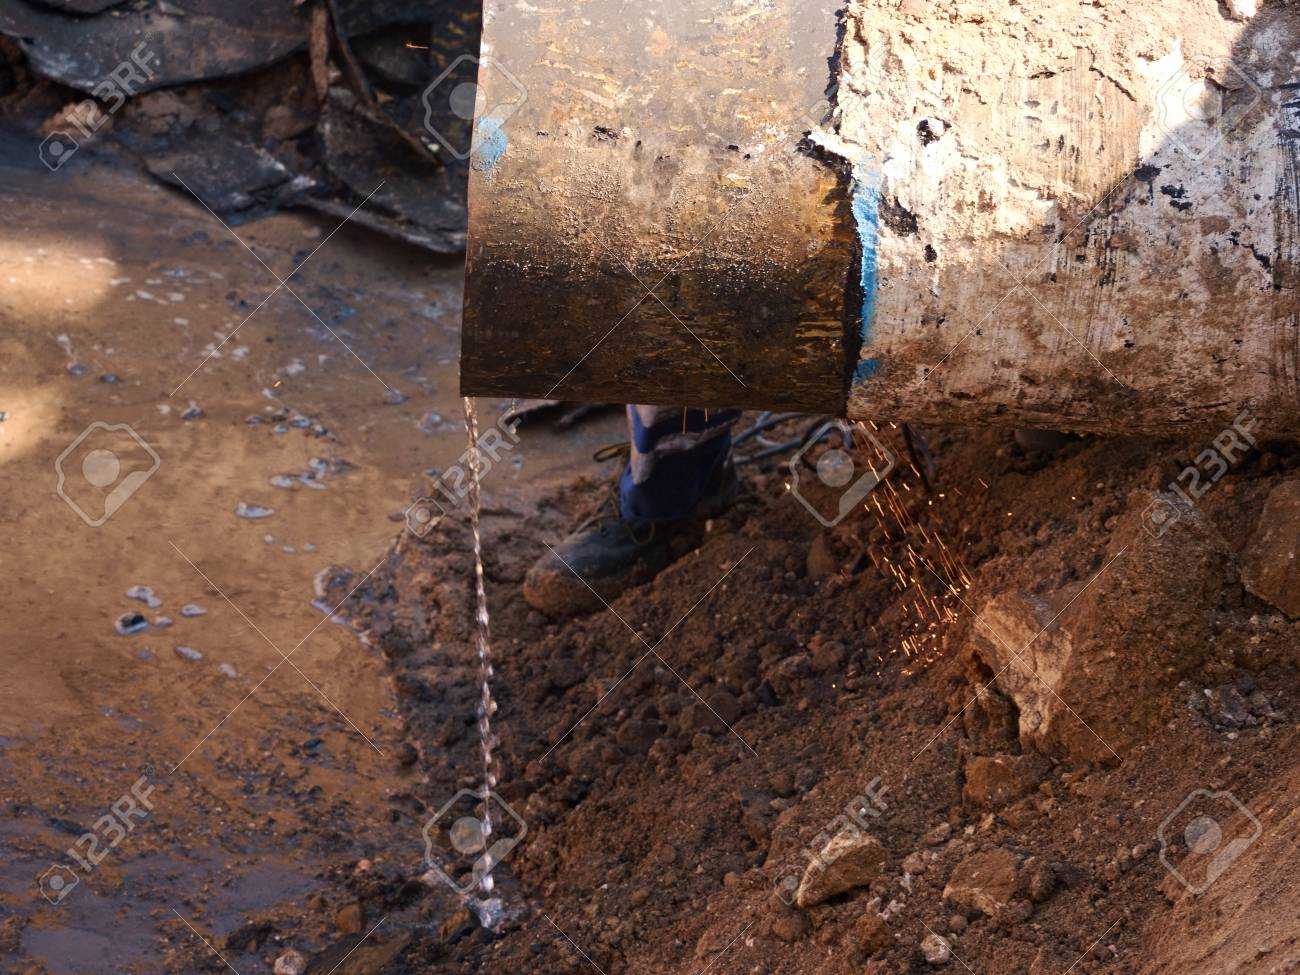 Rusty Old Iron Pipe With Clear Water Flowing From It. Waste water drain pipe in & Rusty Old Iron Pipe With Clear Water Flowing From It. Waste Water ...